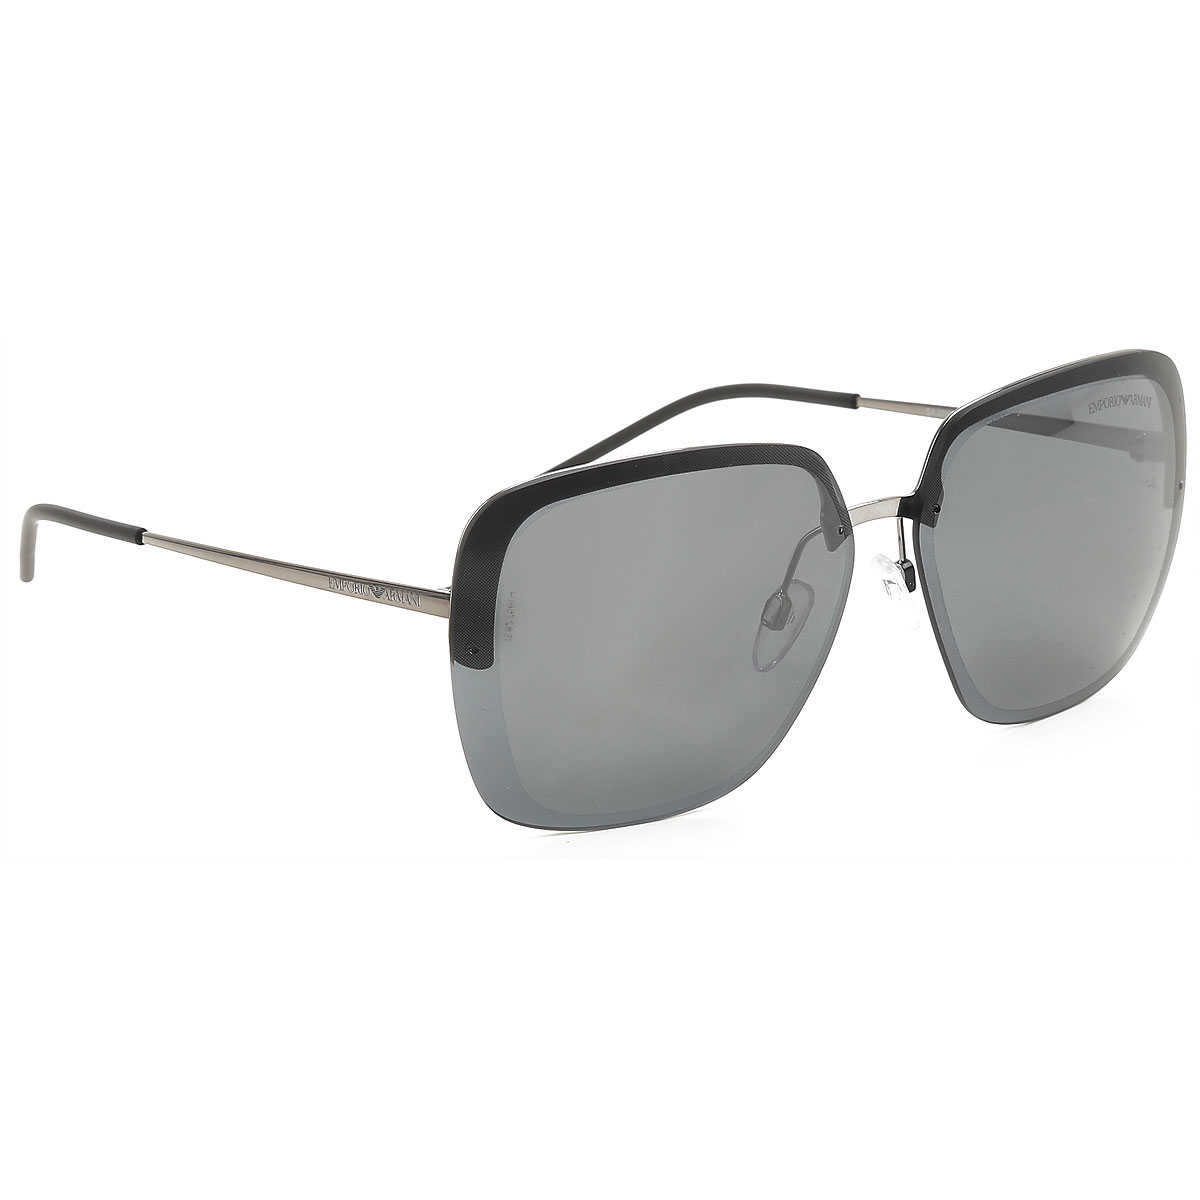 Emporio Armani Sunglasses On Sale